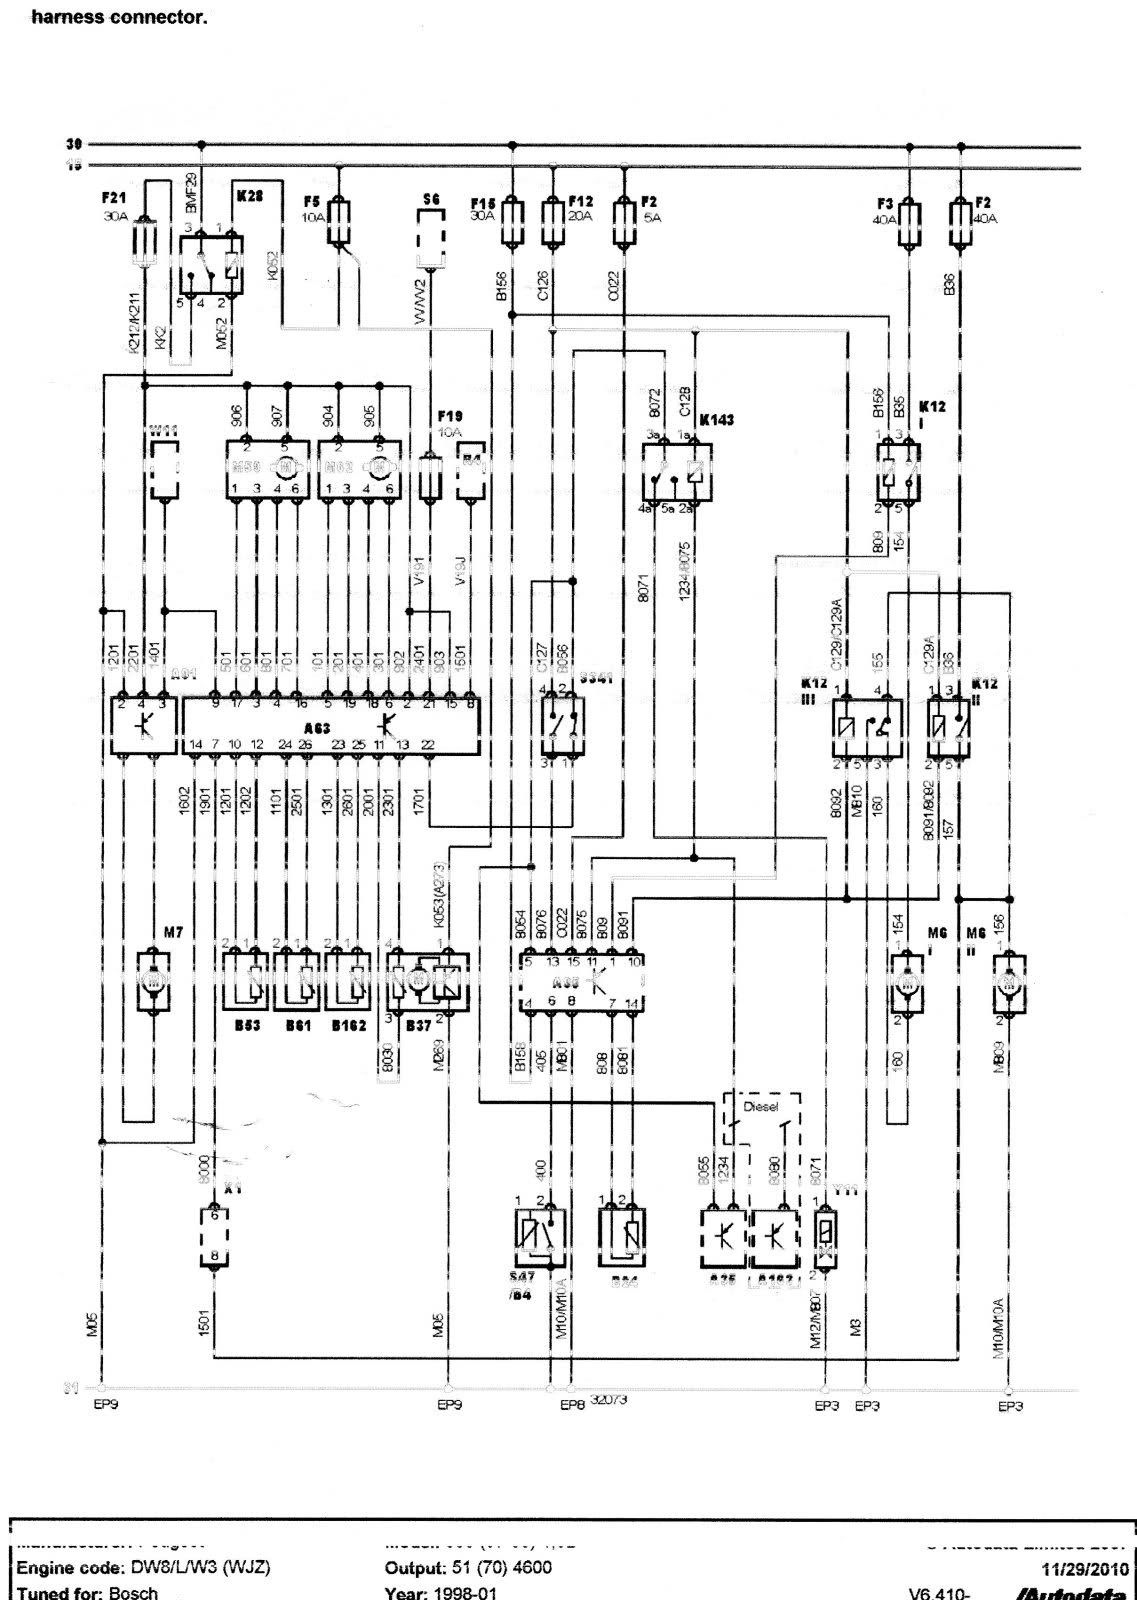 peugeot 505 wiring diagram electronic wiring diagrams rh ore house co uk [ 1137 x 1600 Pixel ]